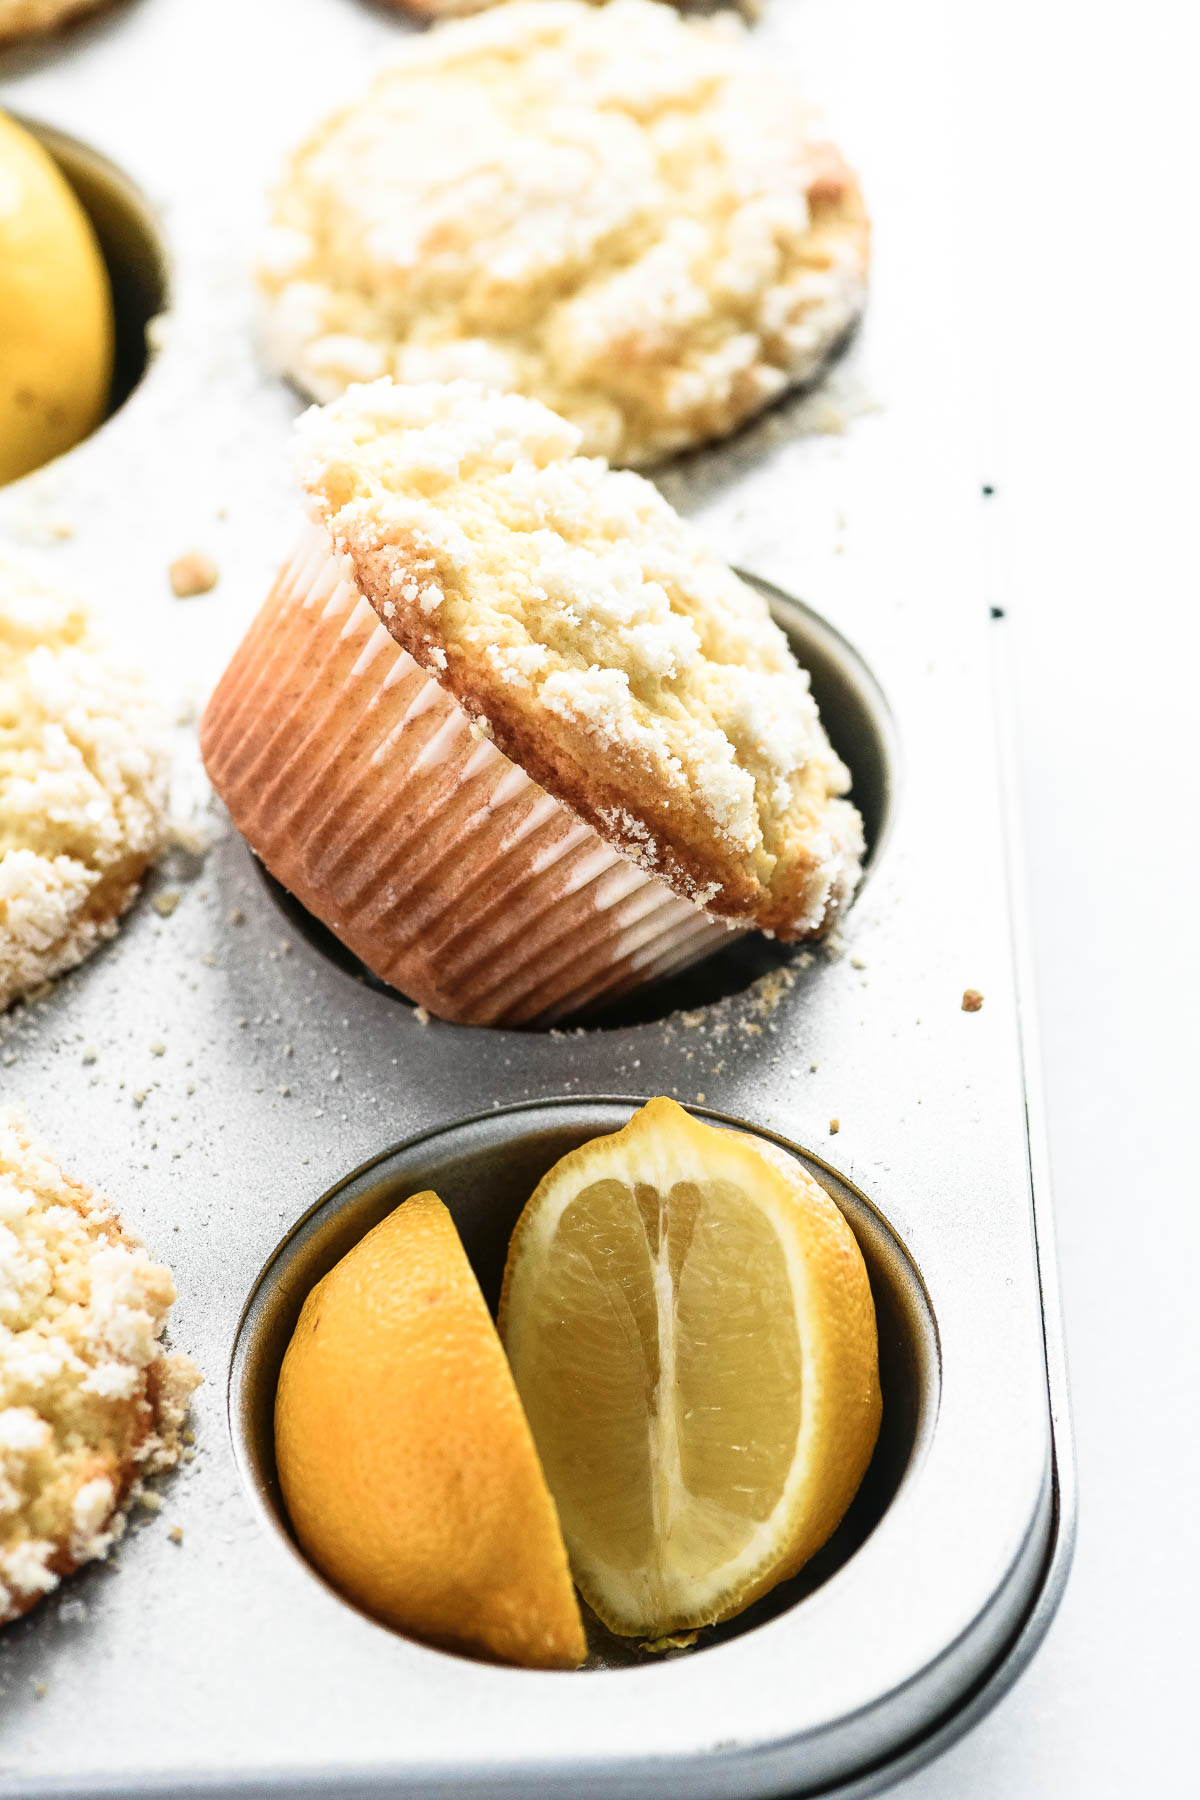 lemon streusel muffins in a muffin pan with fresh lemons